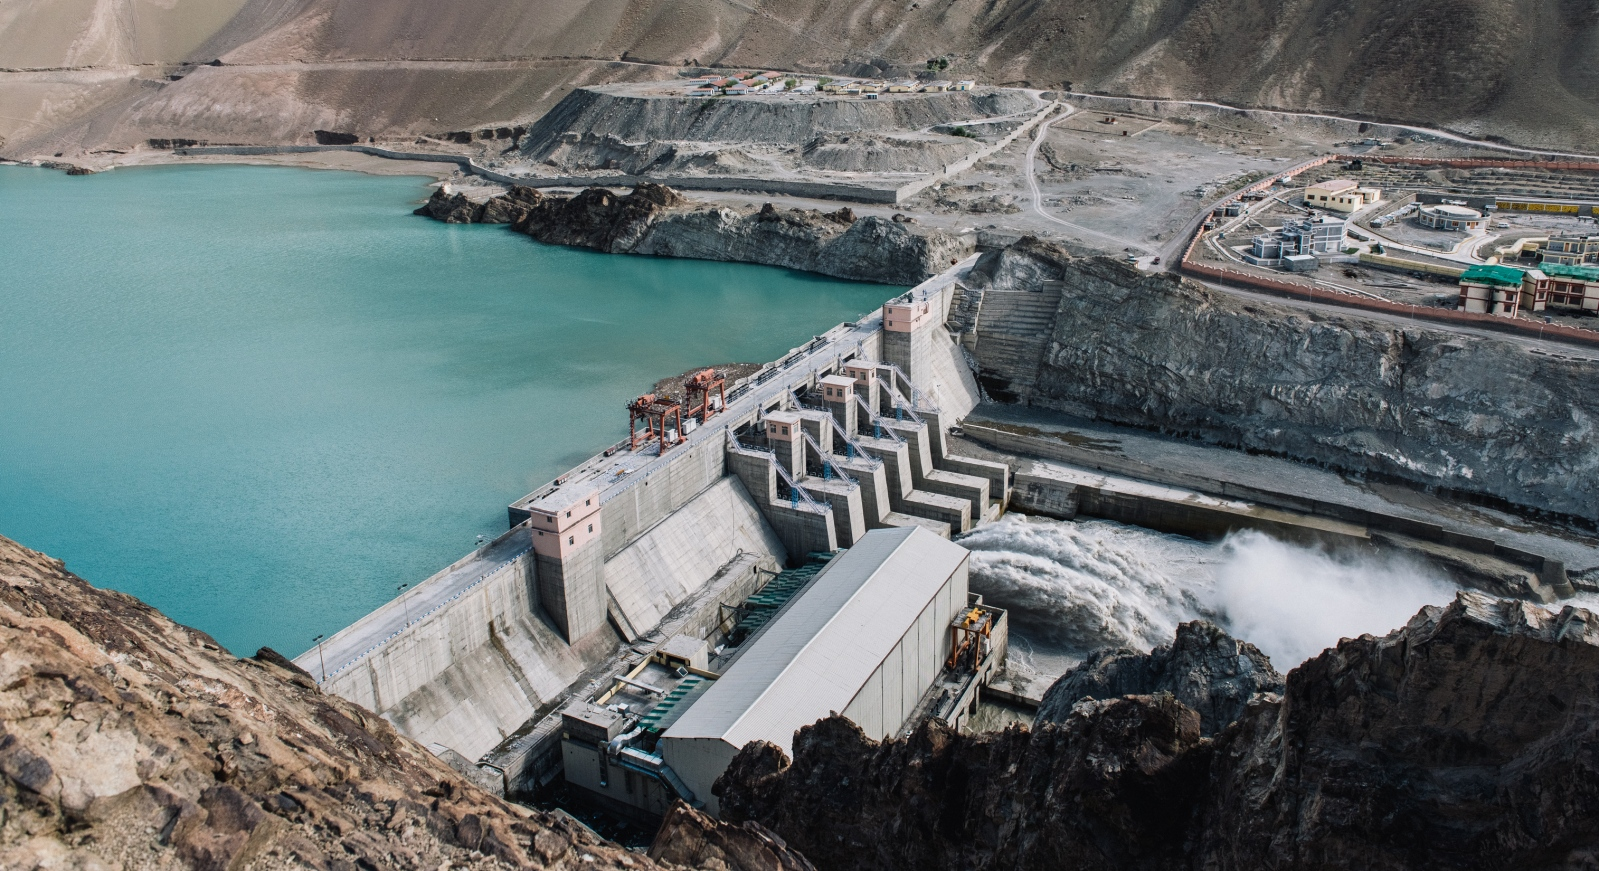 The Nimoo Bazgo Hydroelectric Plant in Alchi, Ladakh, India. It is part of the Nimoo Bazgo Hydroelectric Project currently under construction alongside the Chuttak Hydroelectric Dam both built along the Indus River, a major river and lifeline of water for the a neighboring Pakistan. Although its construction is simply intended to provide substantial energy infrastructure to the region of Jammu & Kashmir, it has been cited as 'a direct violation of the Indus Water Treaty between India and Pakistan,' further increasing geopolitical tensions between the nuclear-armed powers.